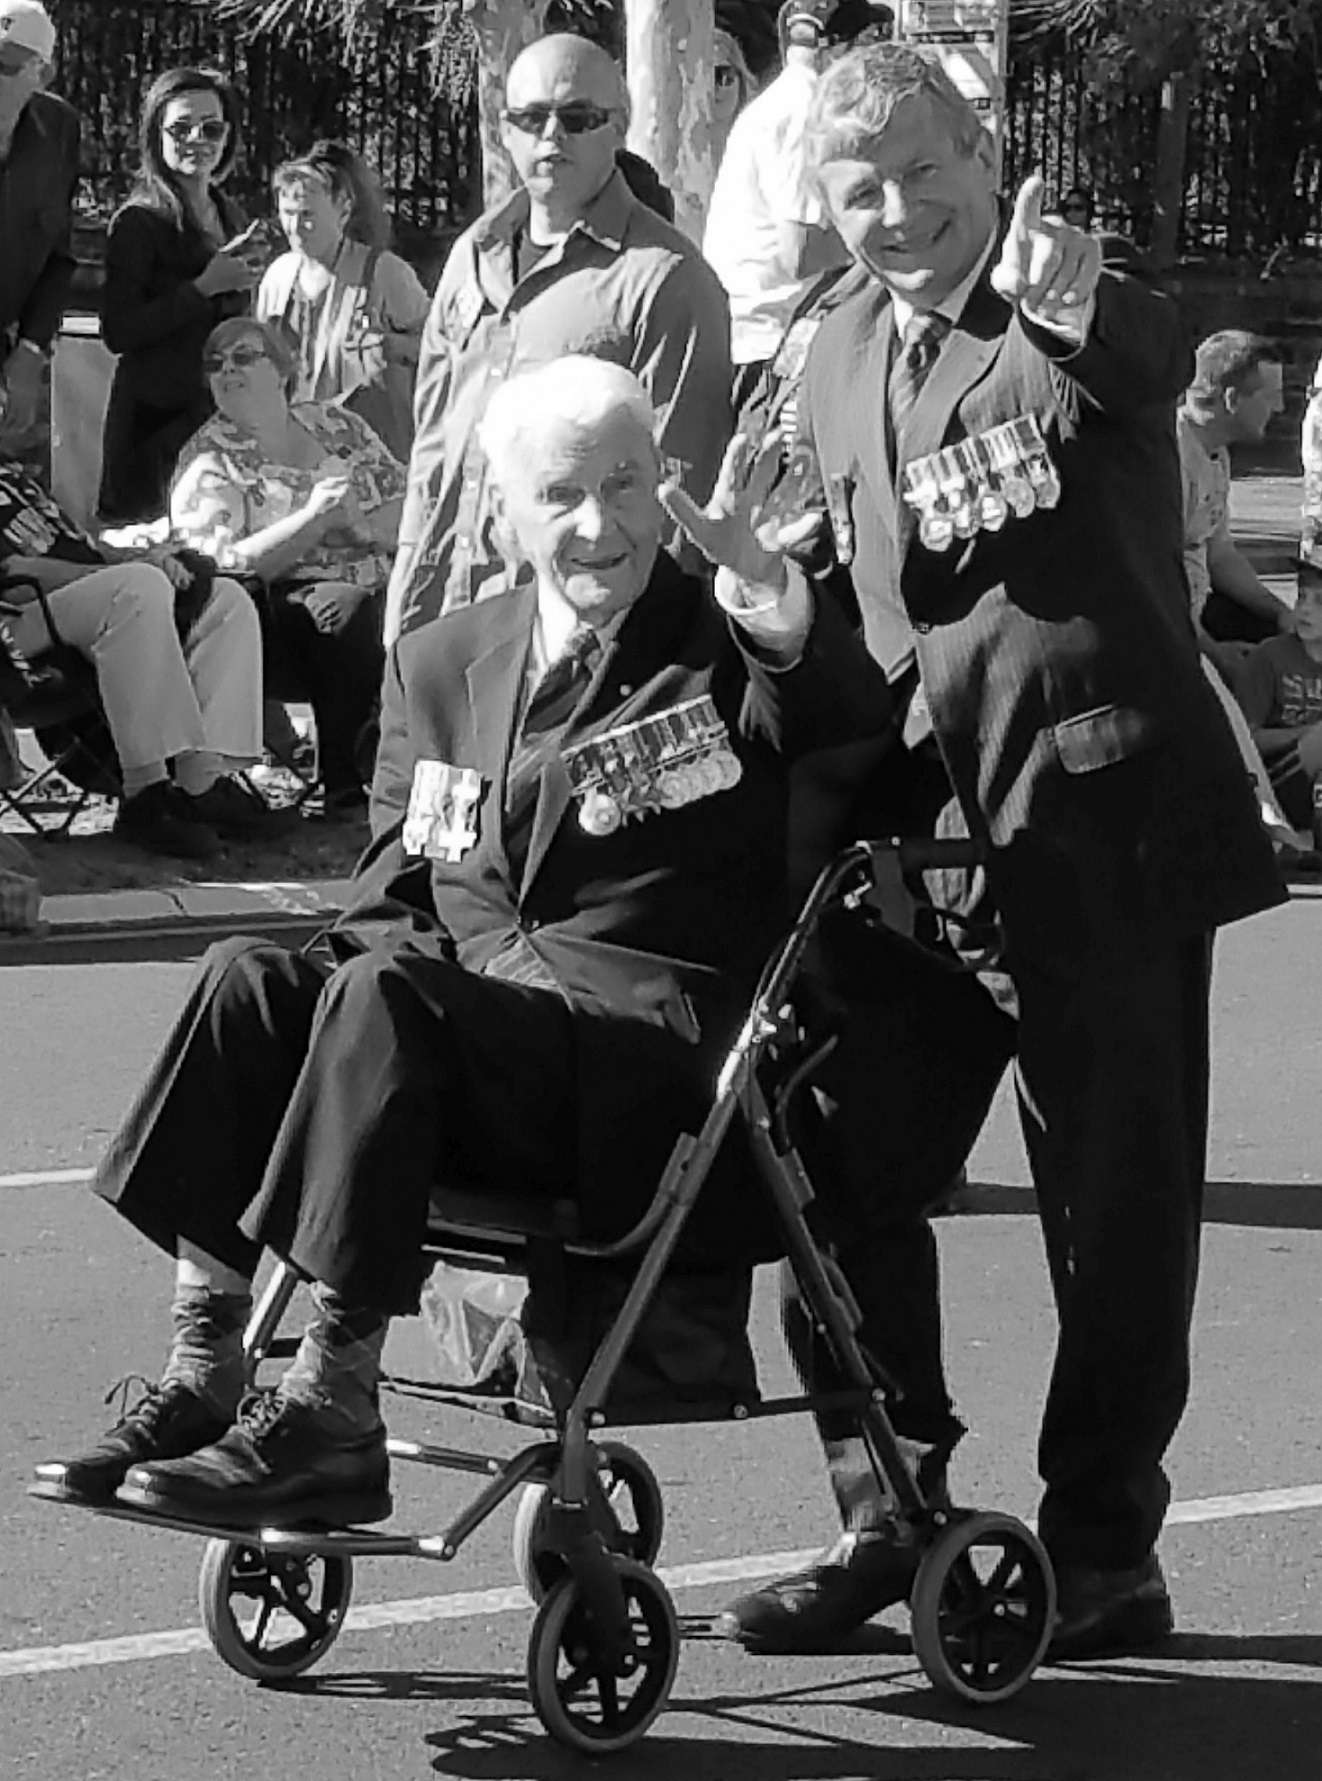 adelaide_anzac_day_old_soldier_wheel_chair